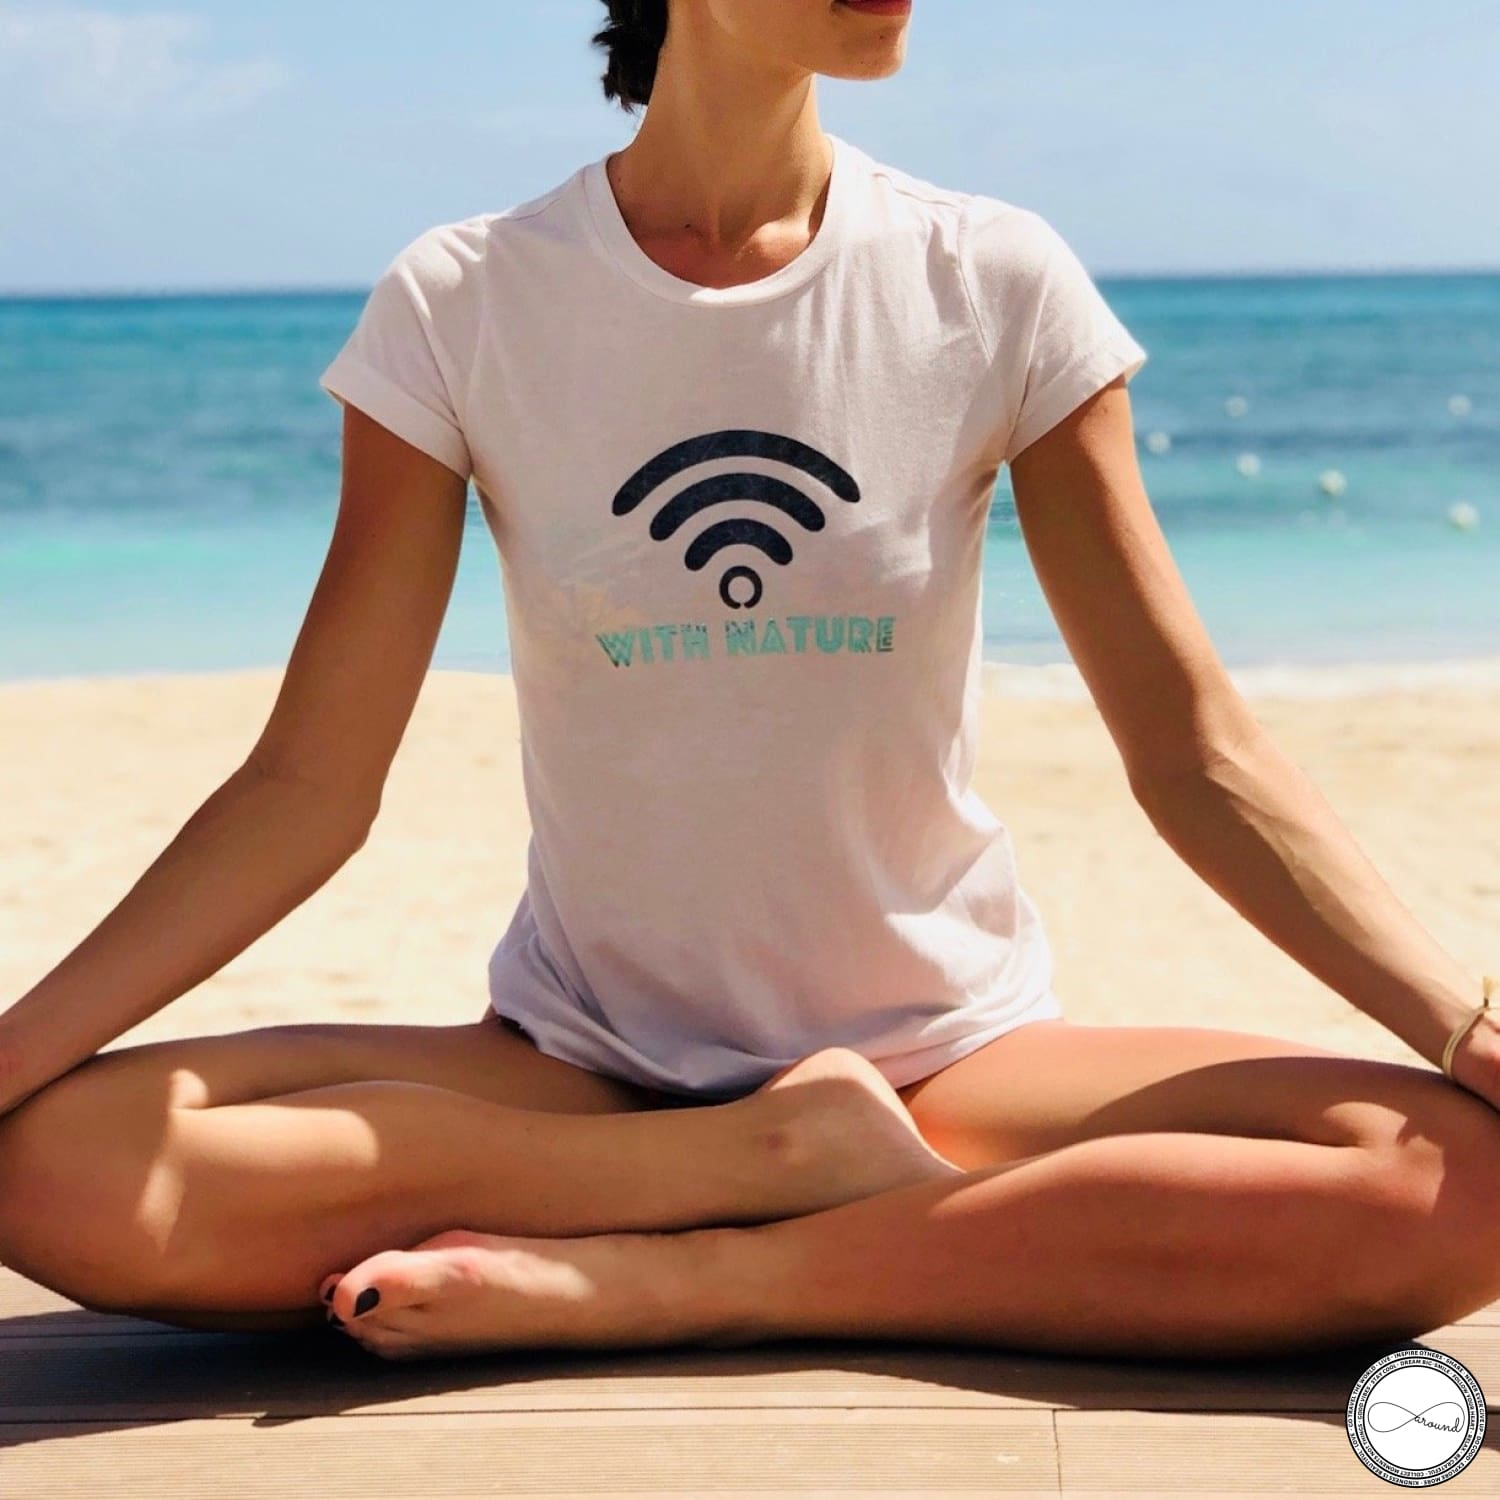 Connected With Nature Travel tshirt by Around Eco,soft tshirt,travel outfit,fairtrade clothing,aroundeco, organic cotton tee